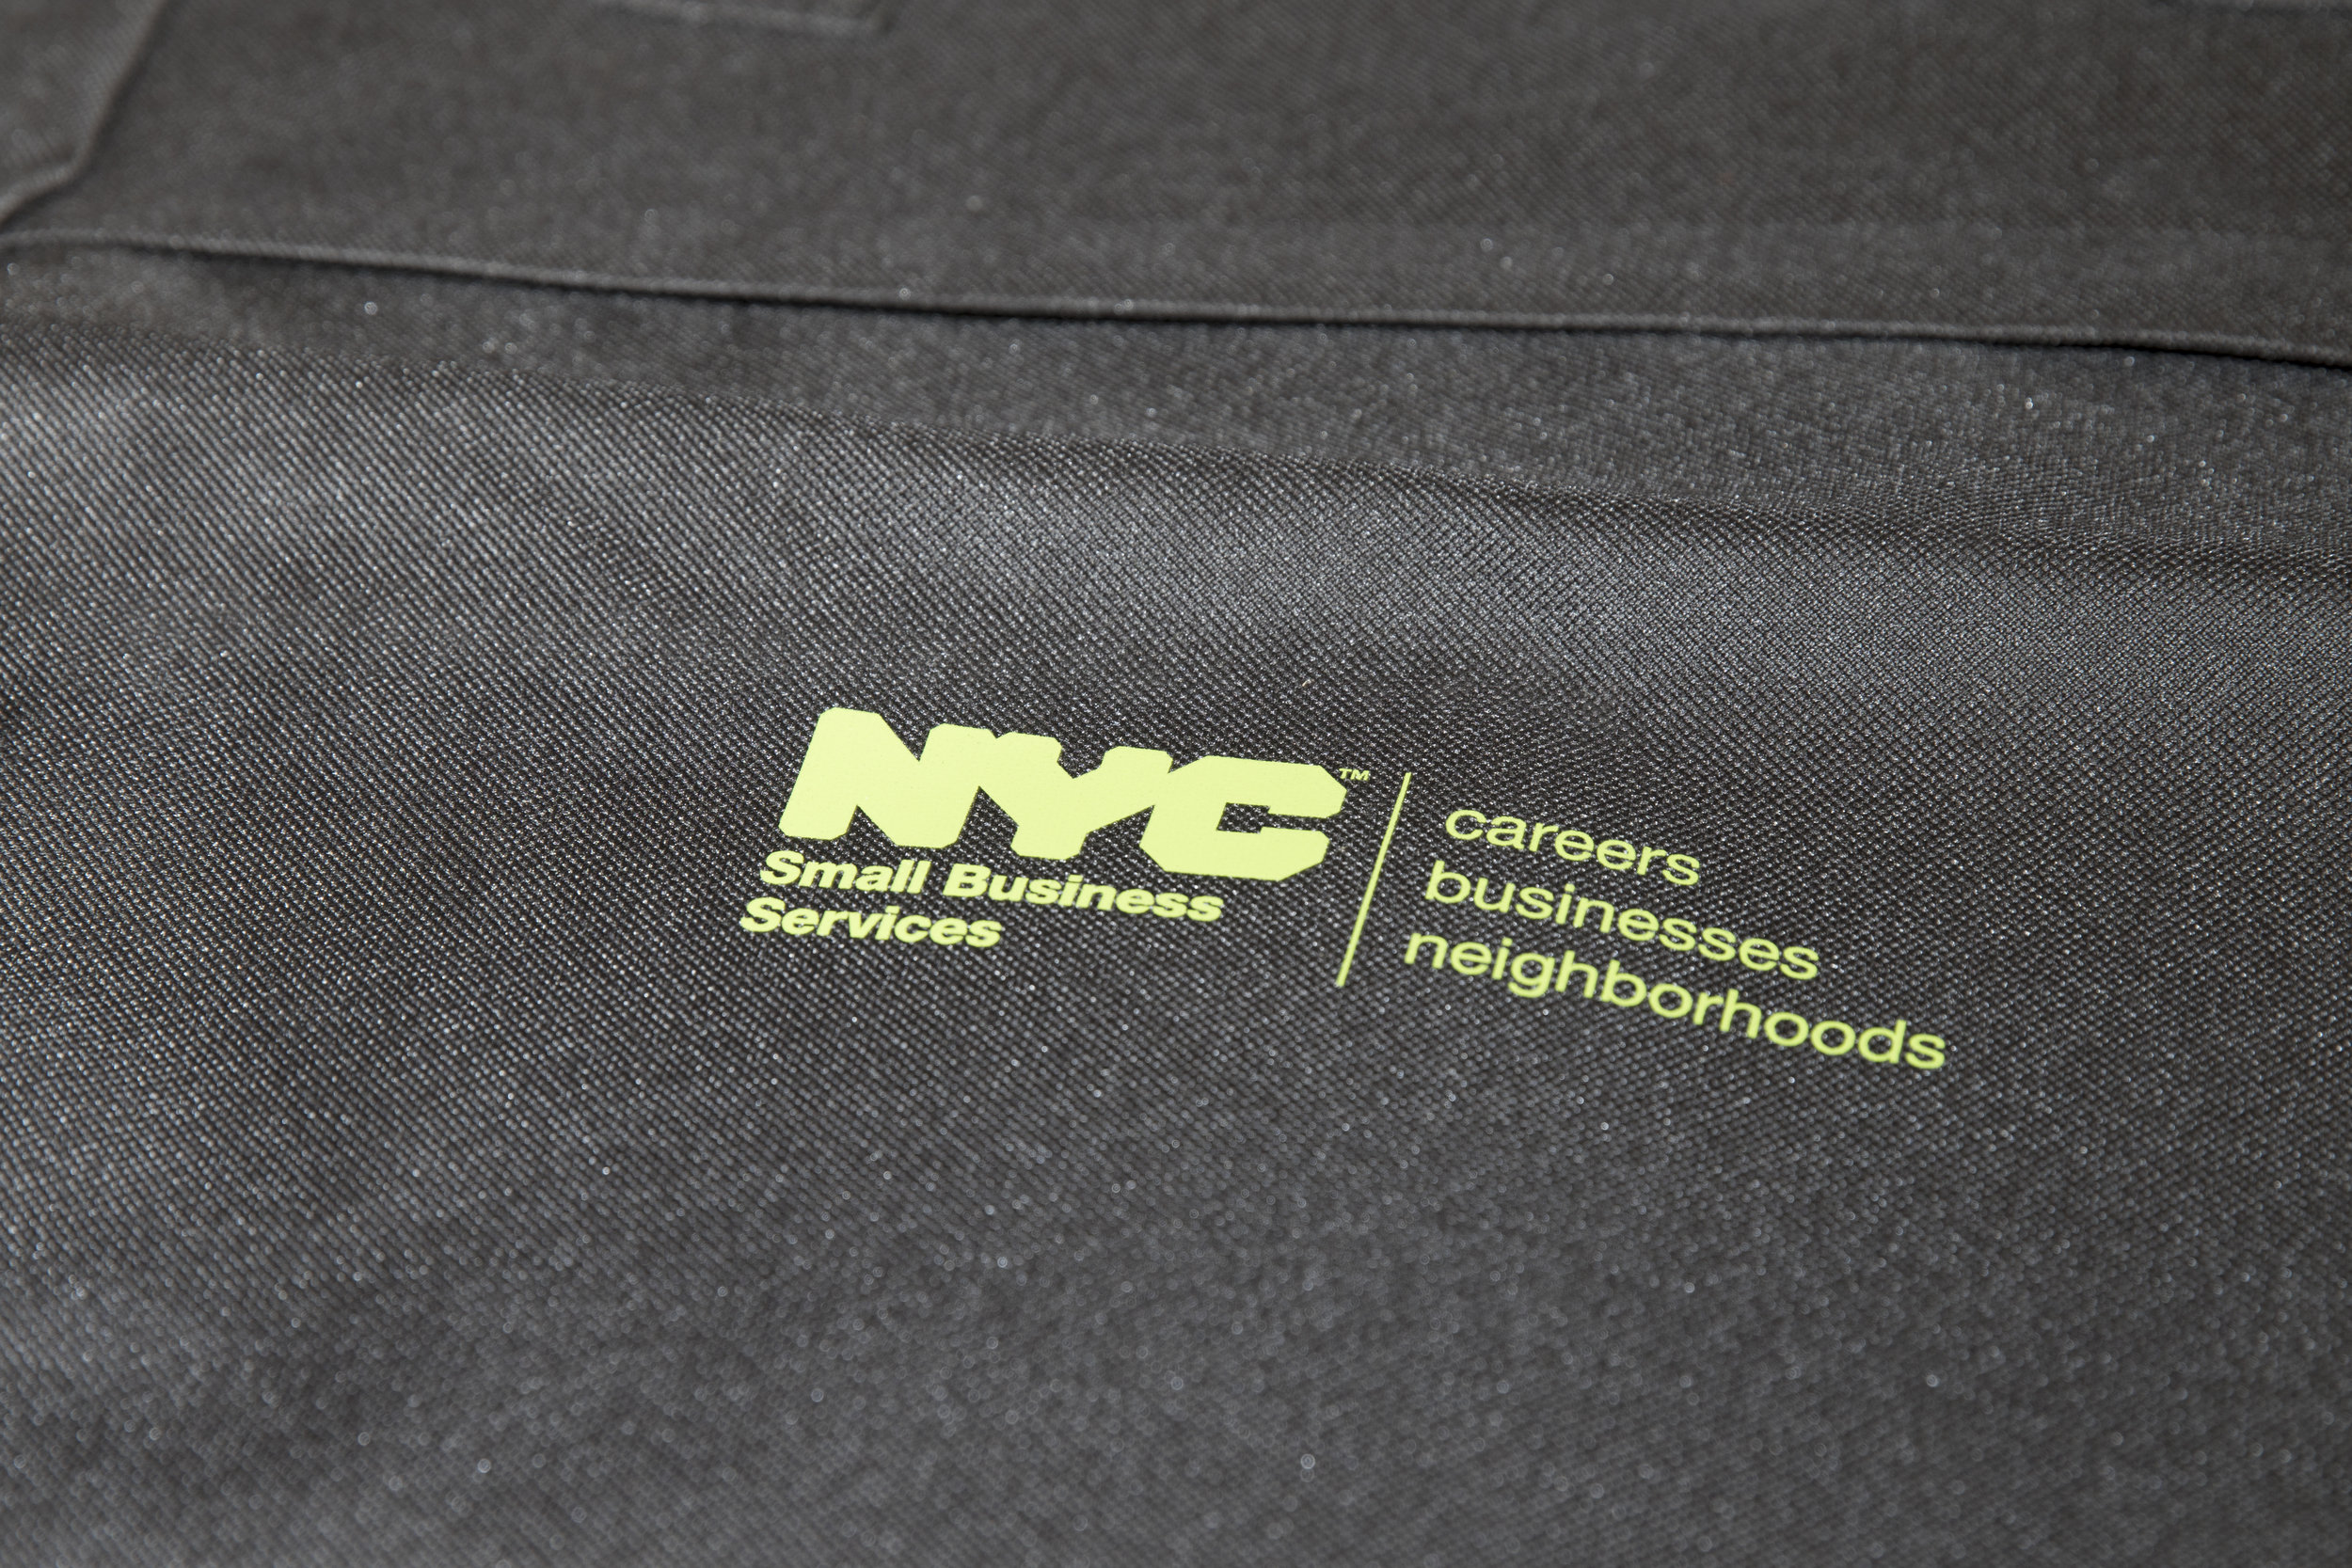 NYC Small Business Services swag